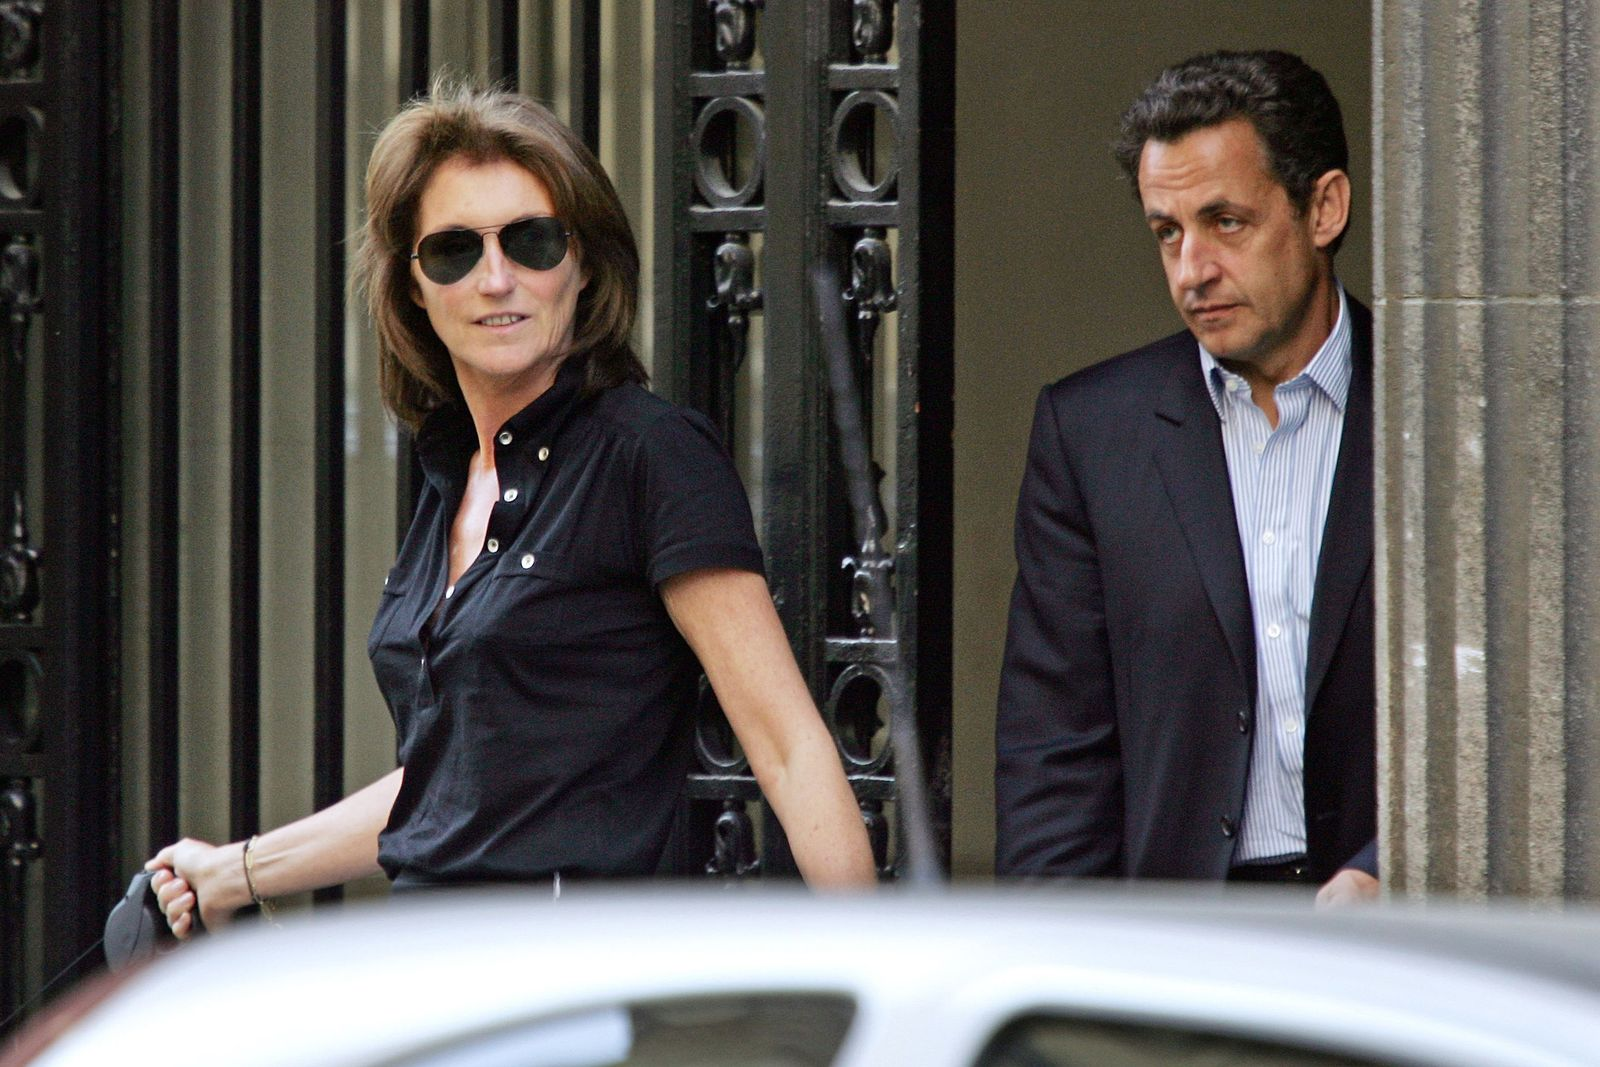 FILES-FRANCE-POLITICS-ASSEMBLY-SARKOZY